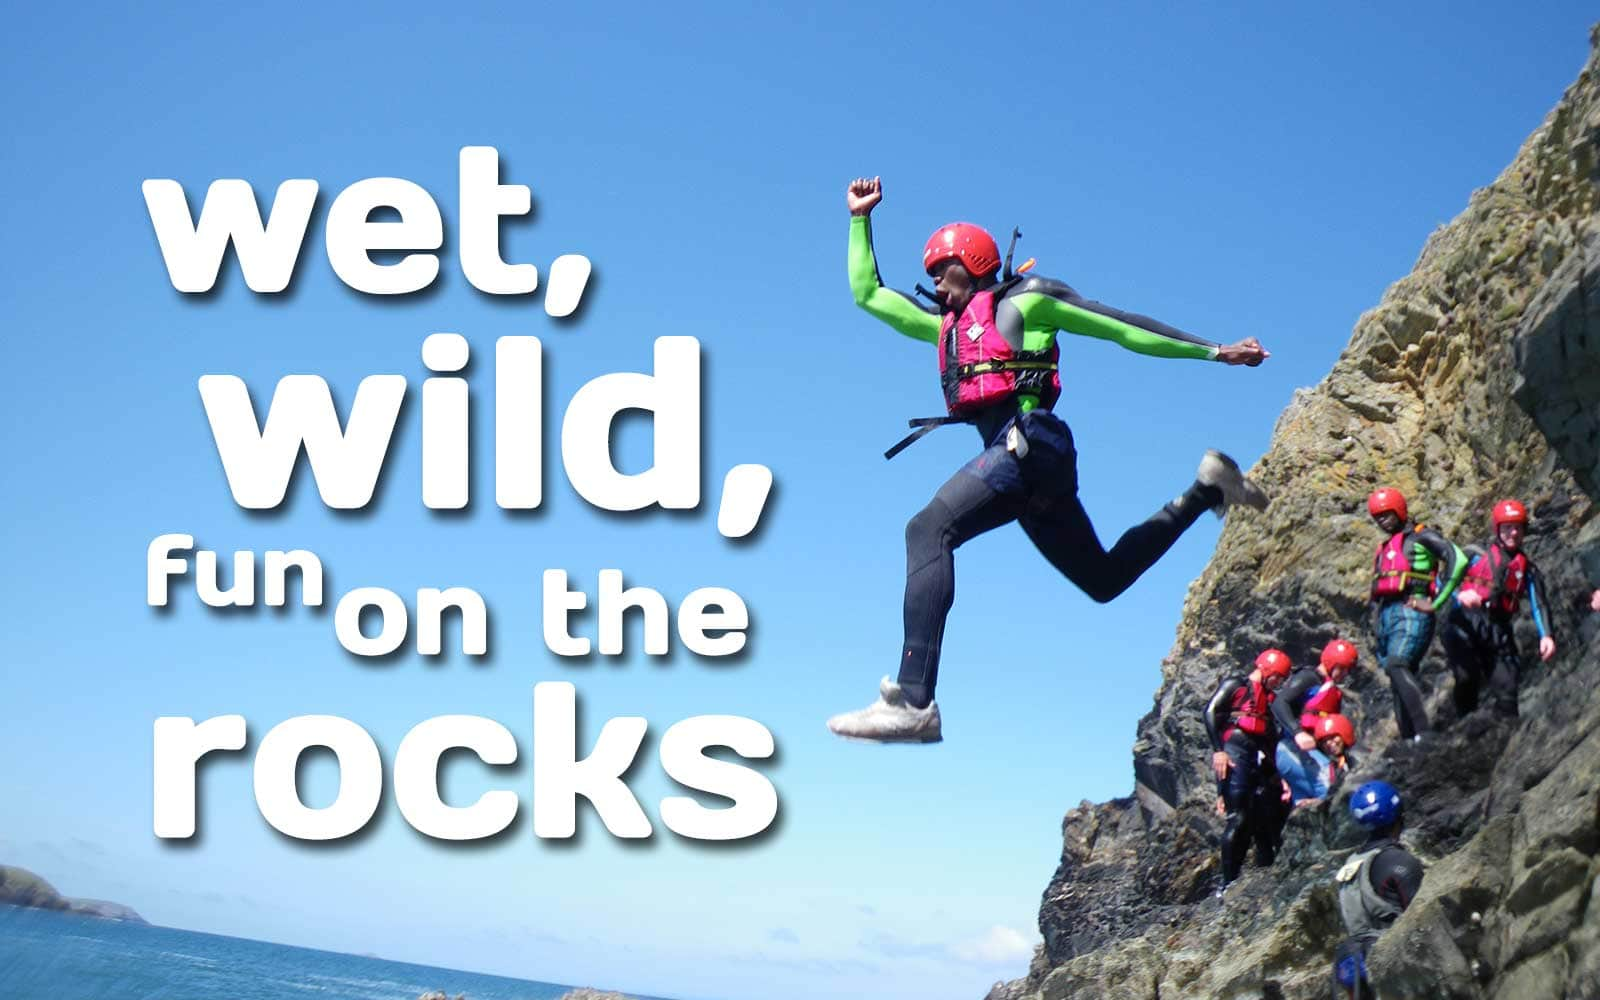 Coasteering involves a mix of cliff jumping, scramble climbing, body surfing, wild swimming and more.